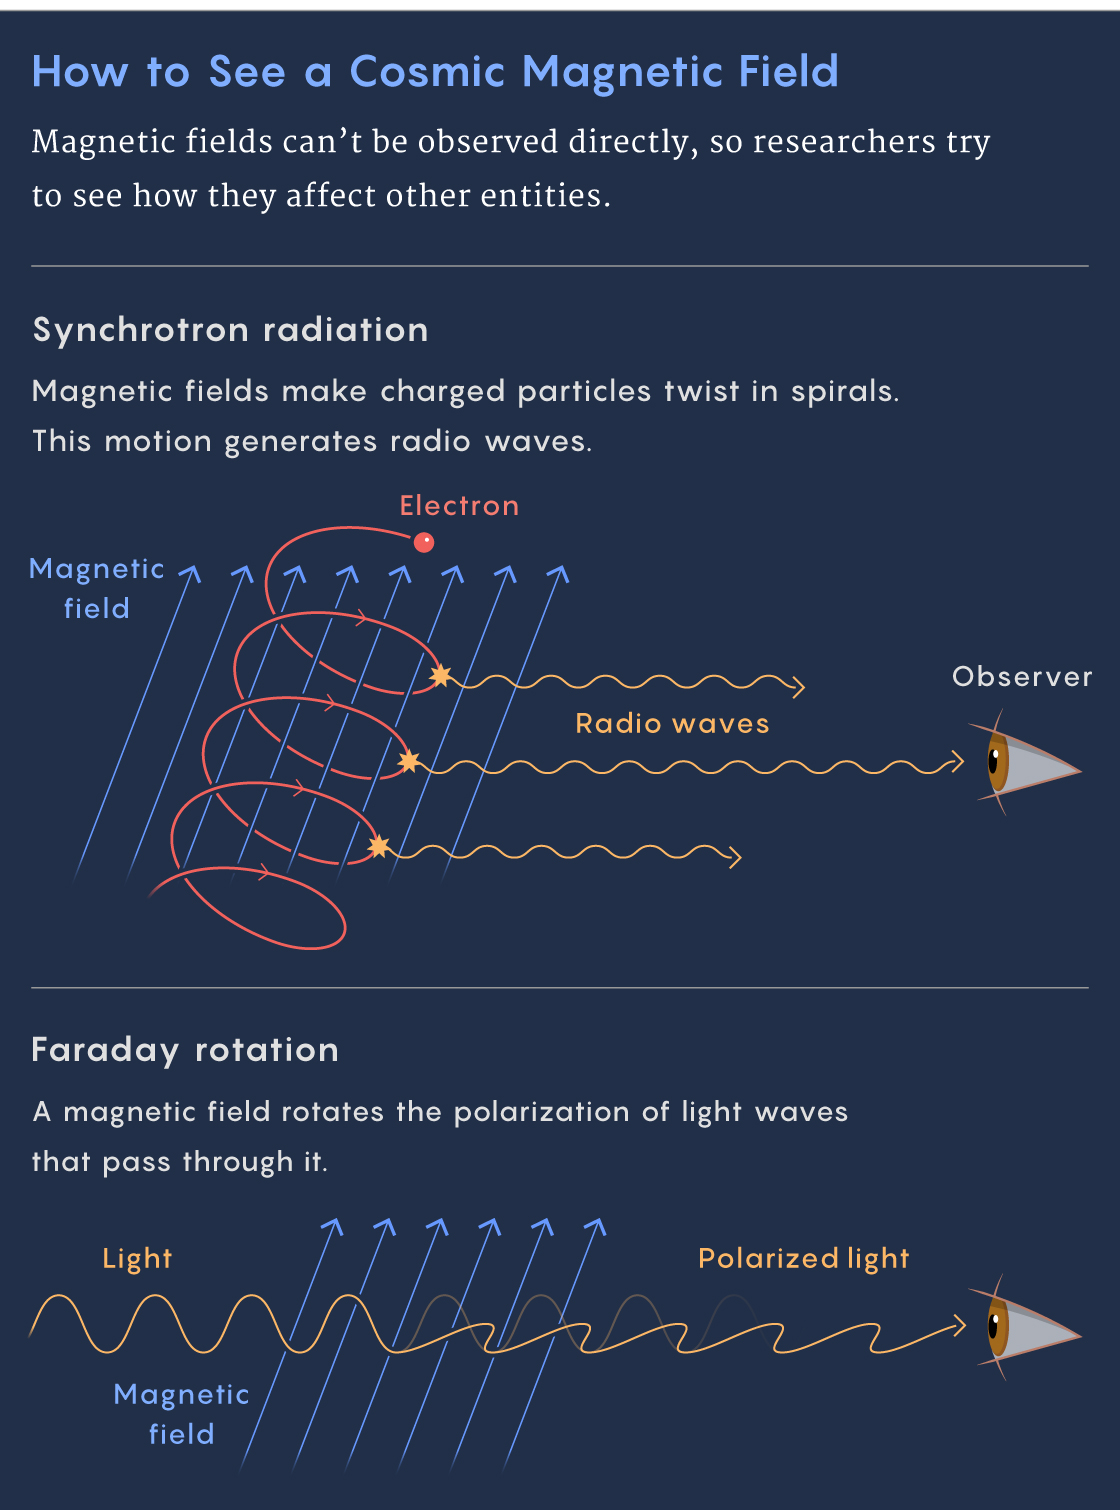 Graphic of synchrotron radiation and Faraday rotation.